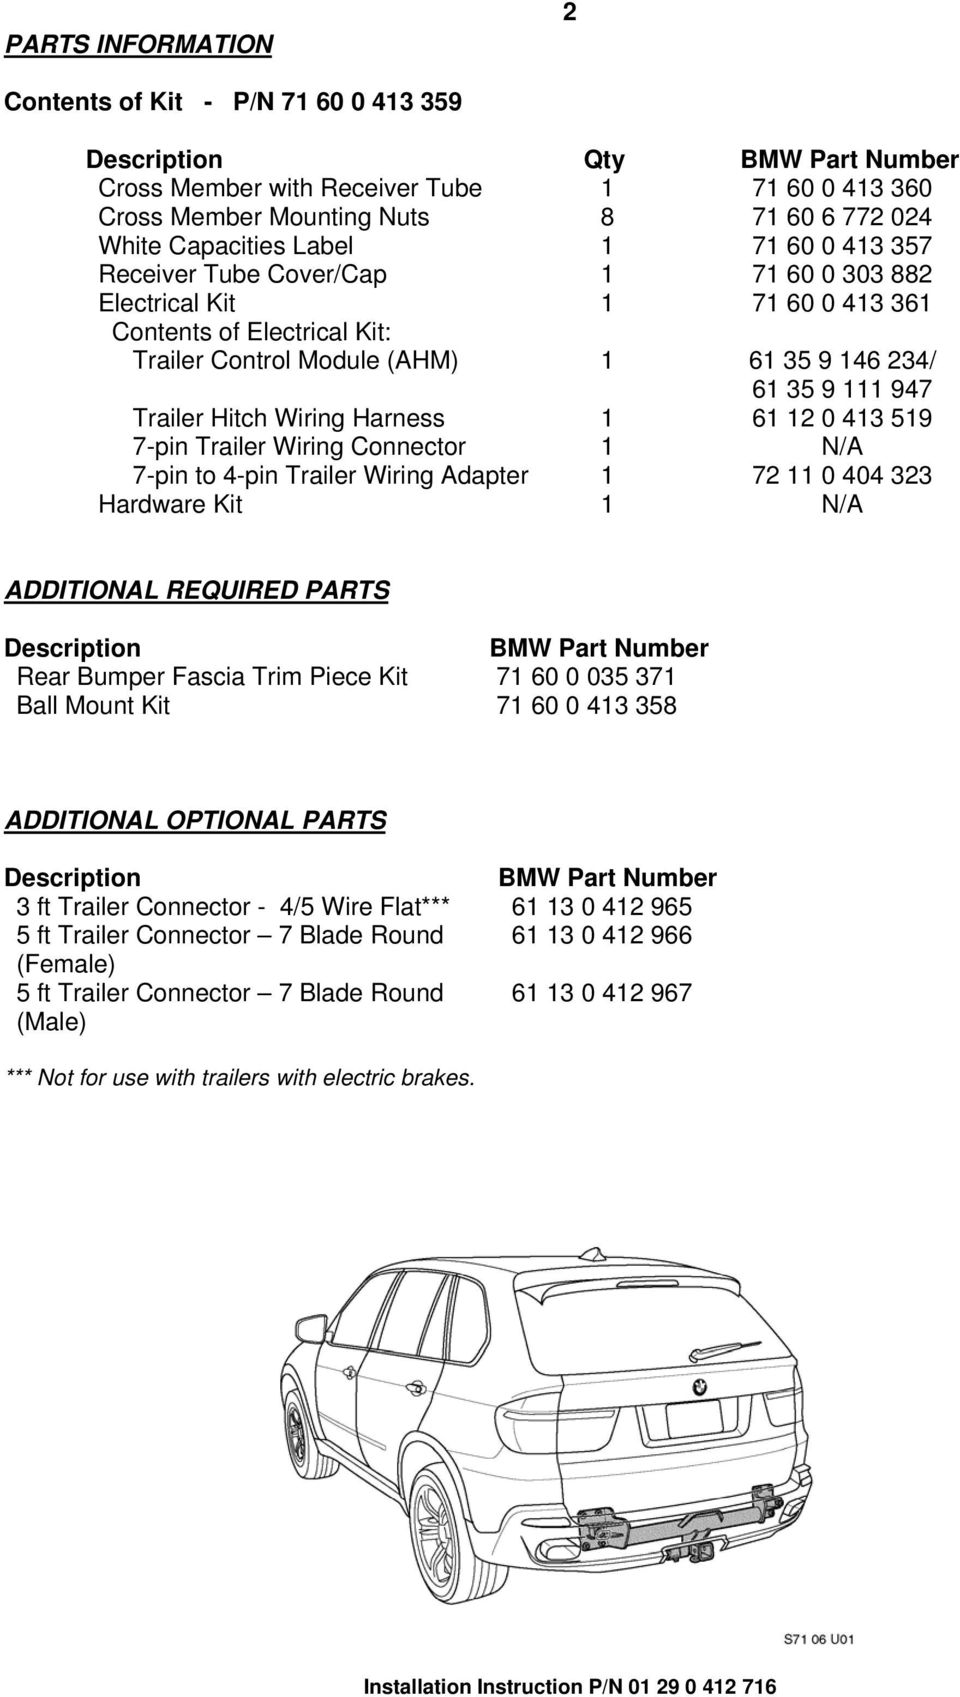 Installation Instructions Pdf 7 Wire Trailer Wiring Kit 947 Hitch Harness 1 61 12 0 413 519 Pin